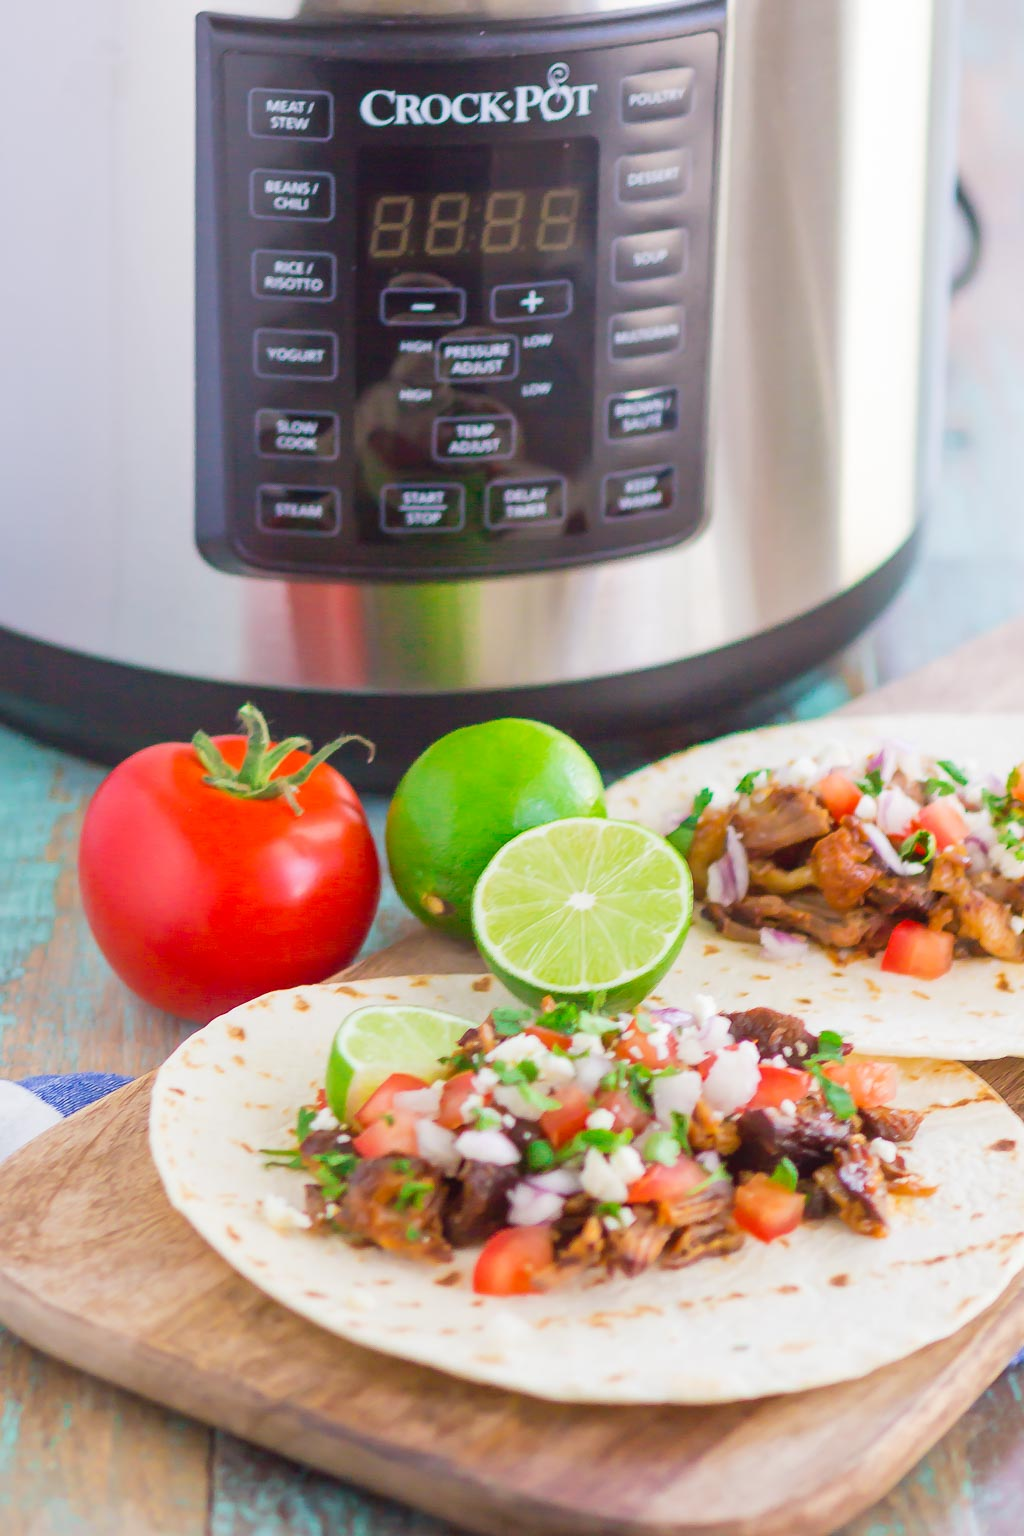 Honey Barbecue Pork Tacos are fast, fresh, and loaded with flavor. Made with just a few ingredients and ready in no time, this is the perfect meal to enjoy when you don't want to spend hours in the kitchen! #tacos #porktacos #honeybarbecue #instantpottacos